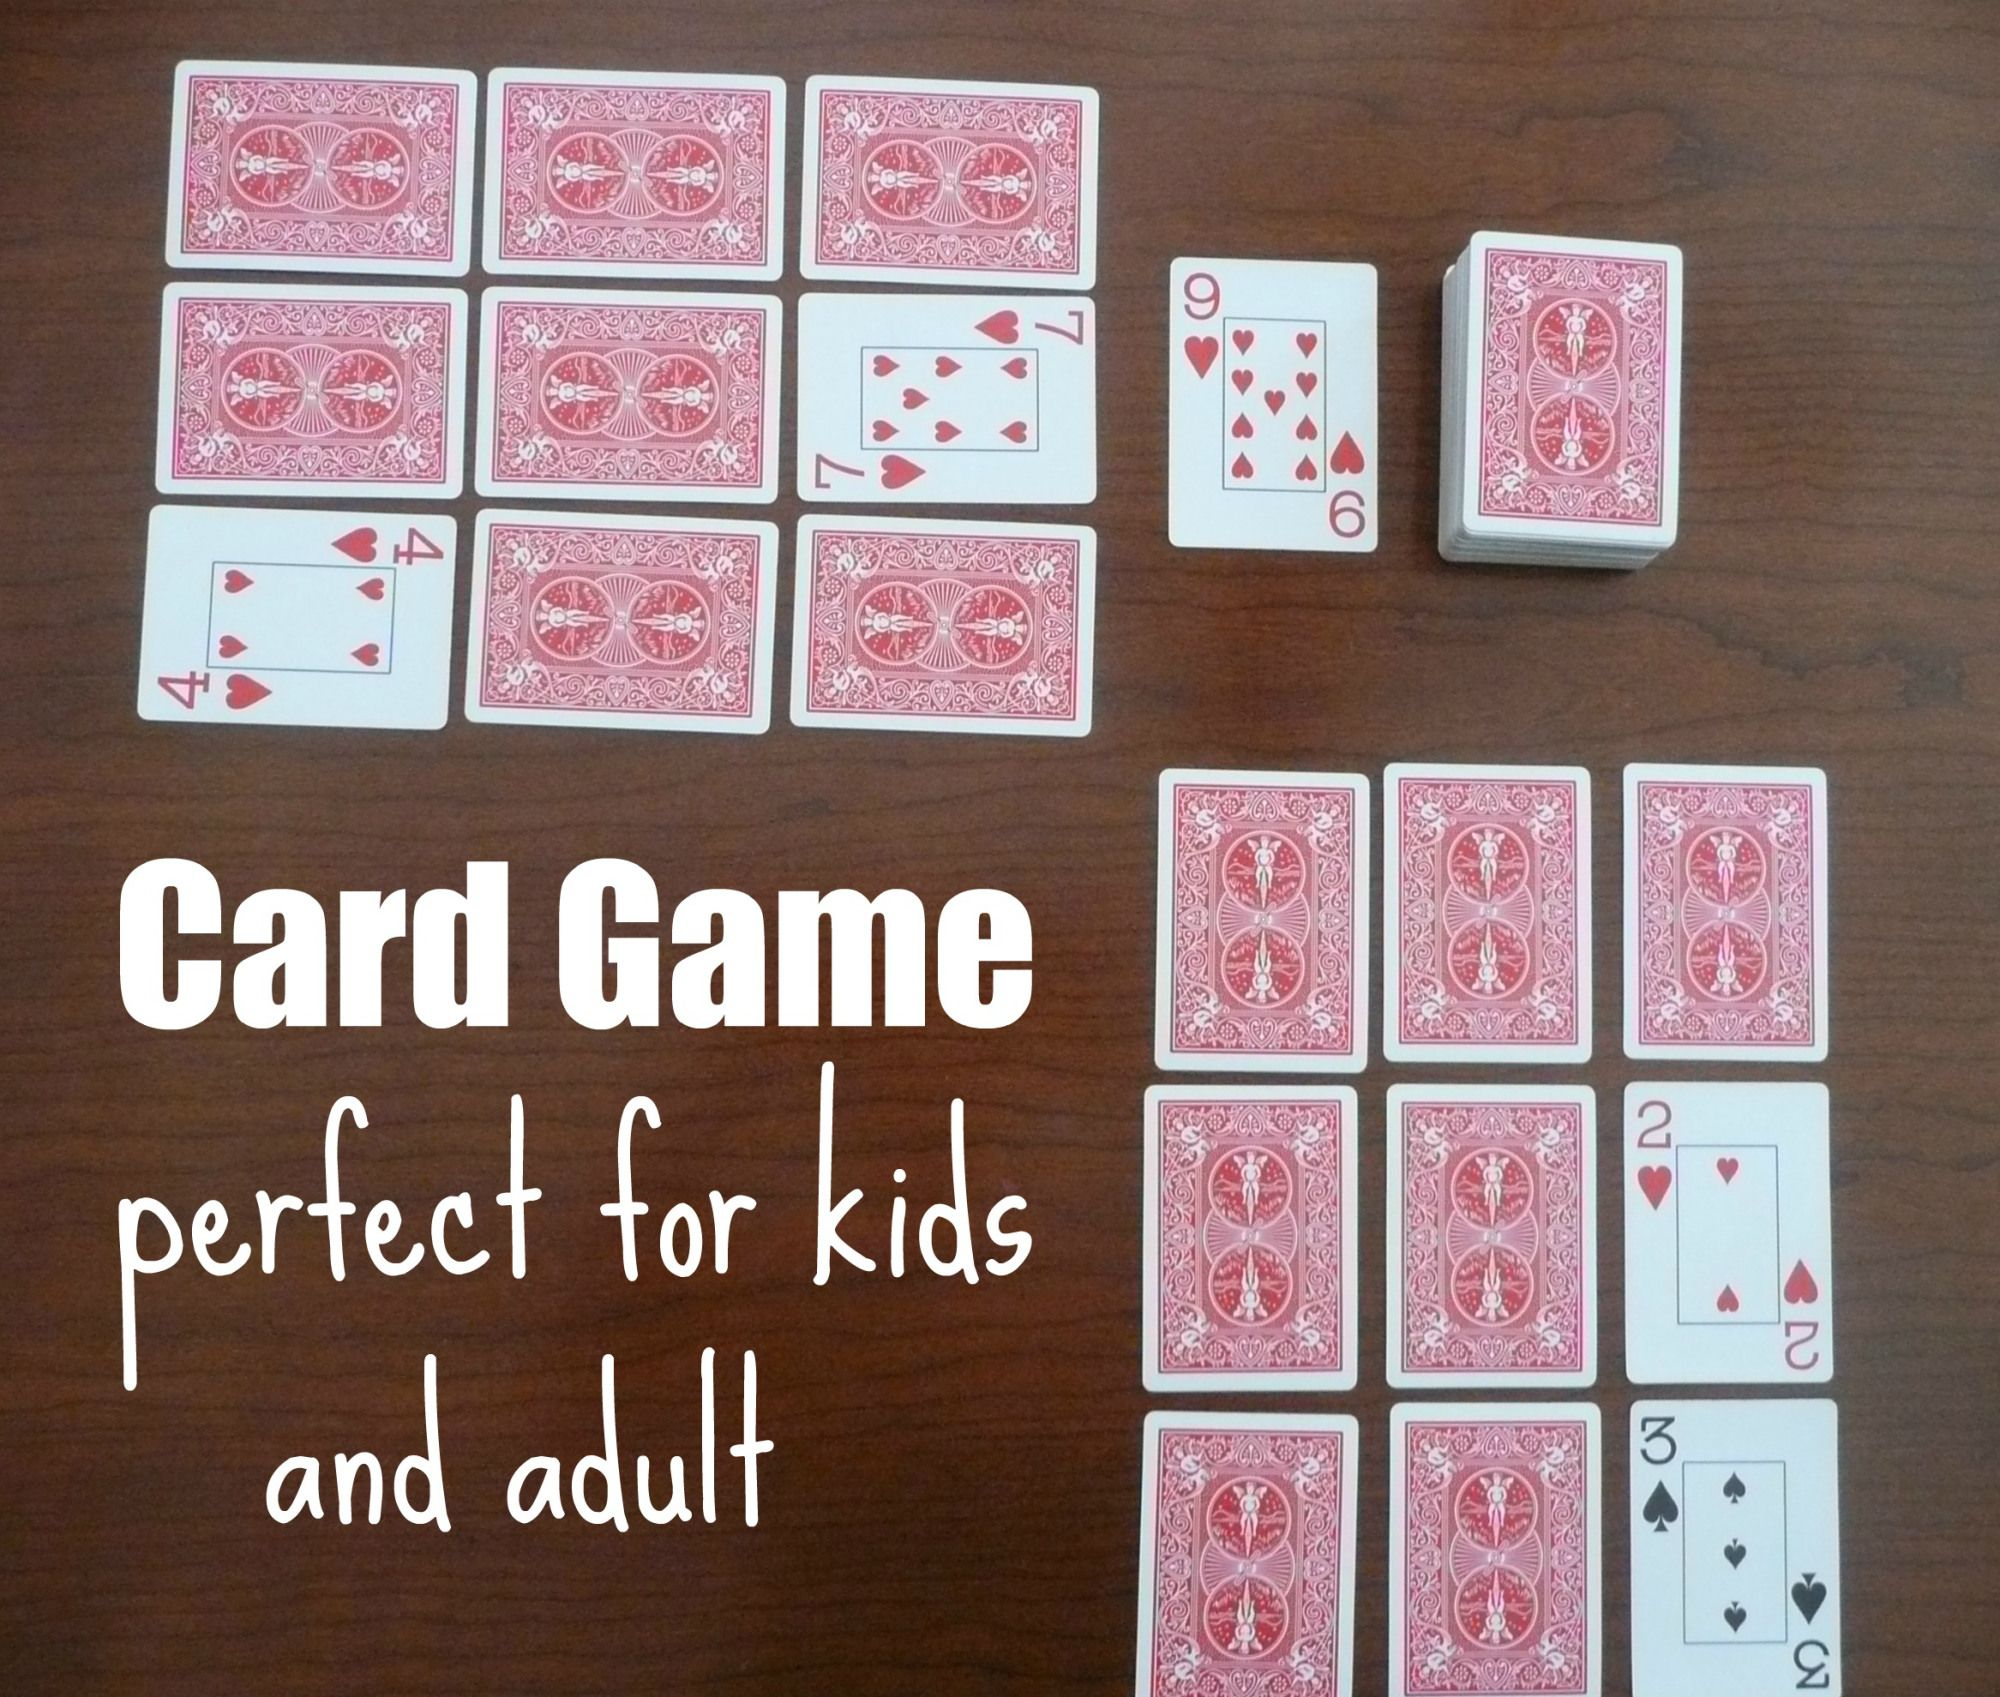 Golf Card Game Rules with Printable Card games for kids